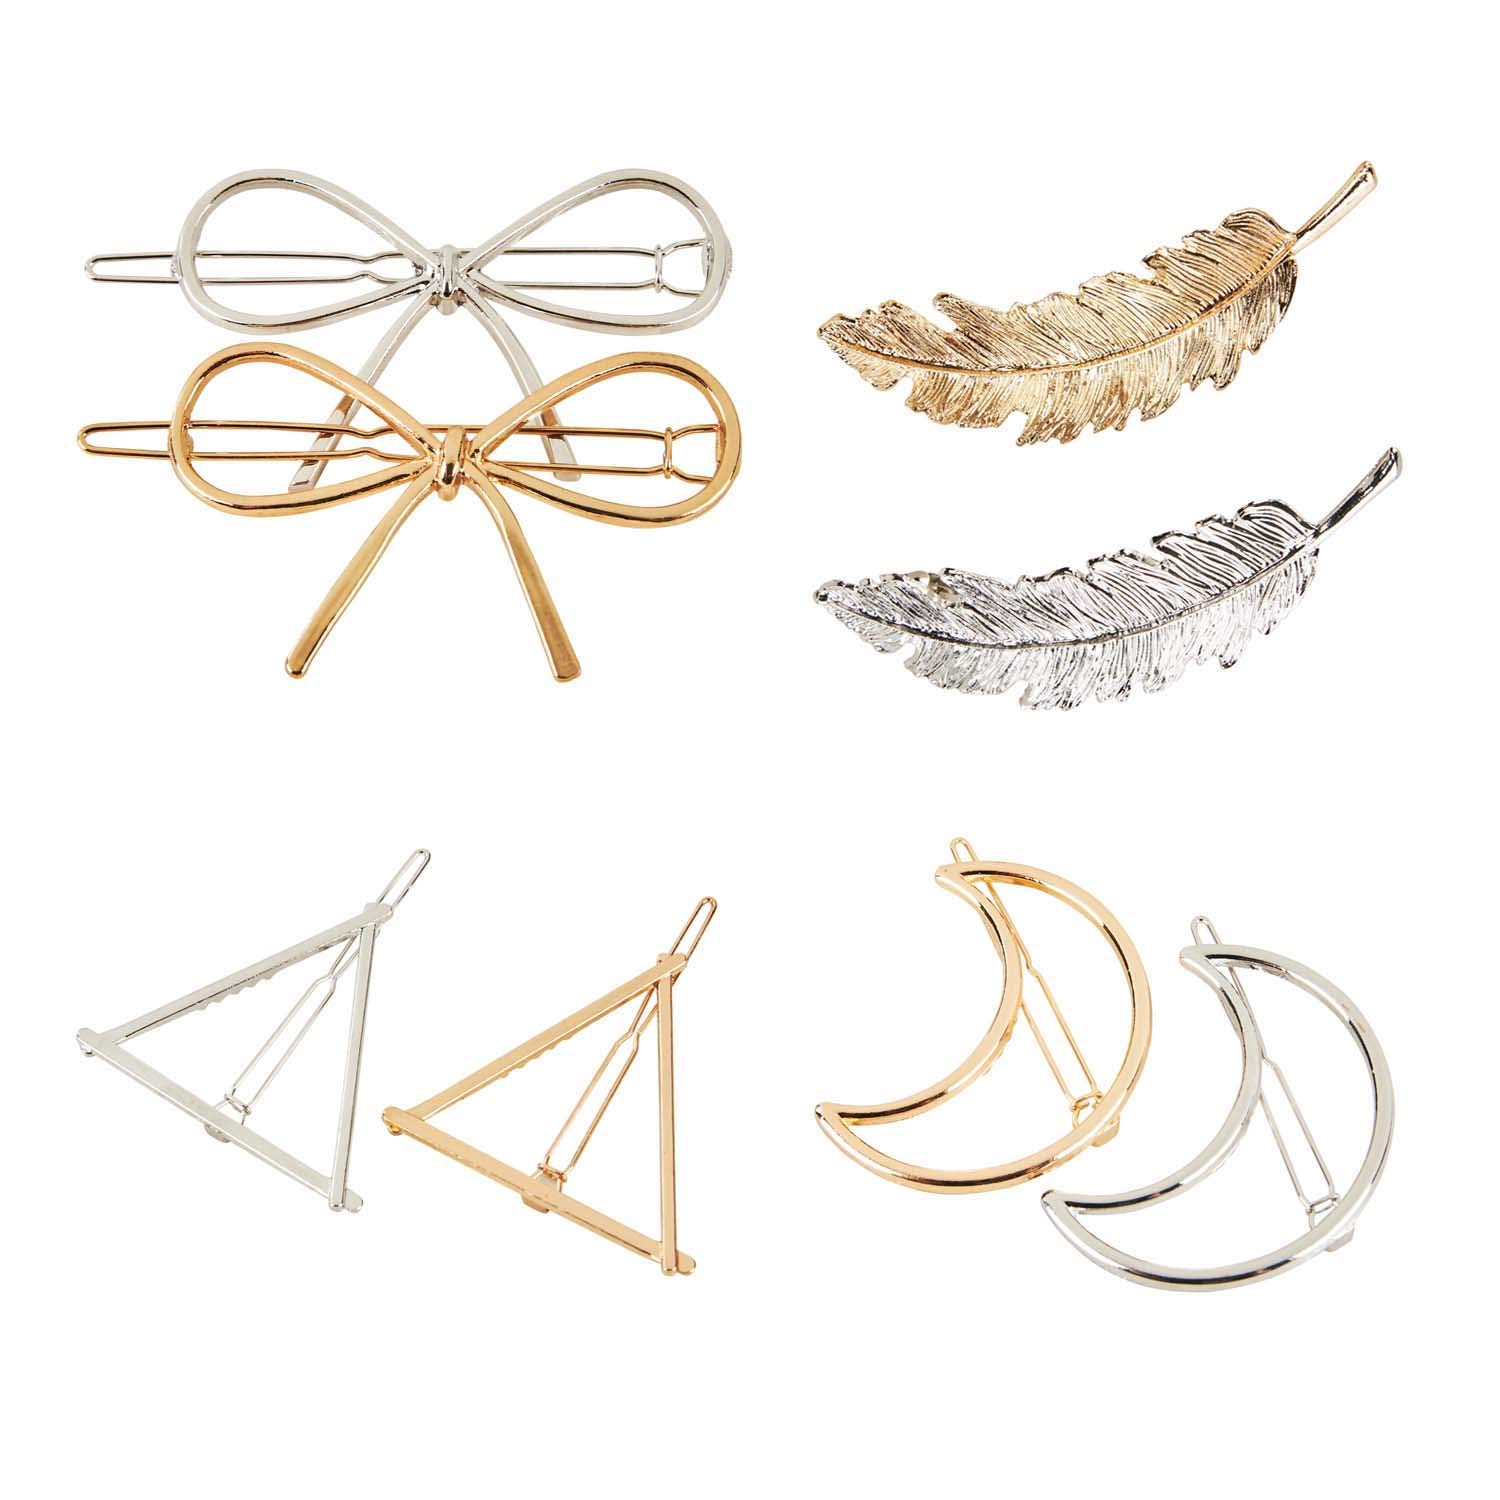 Bridess 8pcs Hair Pins Moon Triangle Circle Leaves Barrettes Hair Clips for Women Z-638-L-3713